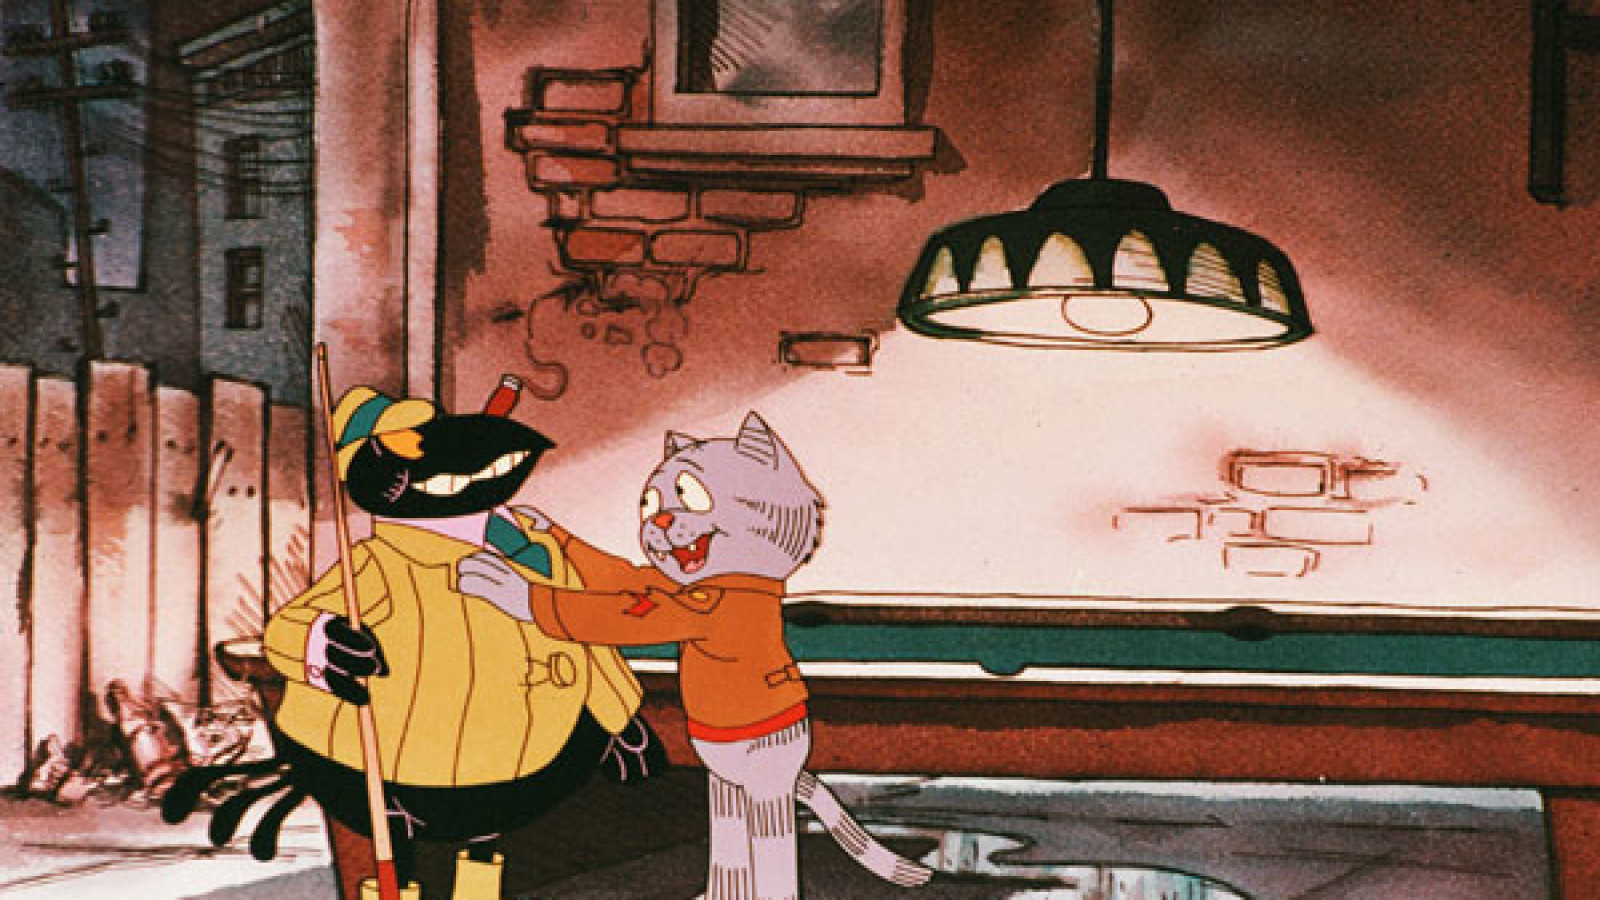 Fritz and one of the Black crows of Harlem in Fritz the Cat (1972)